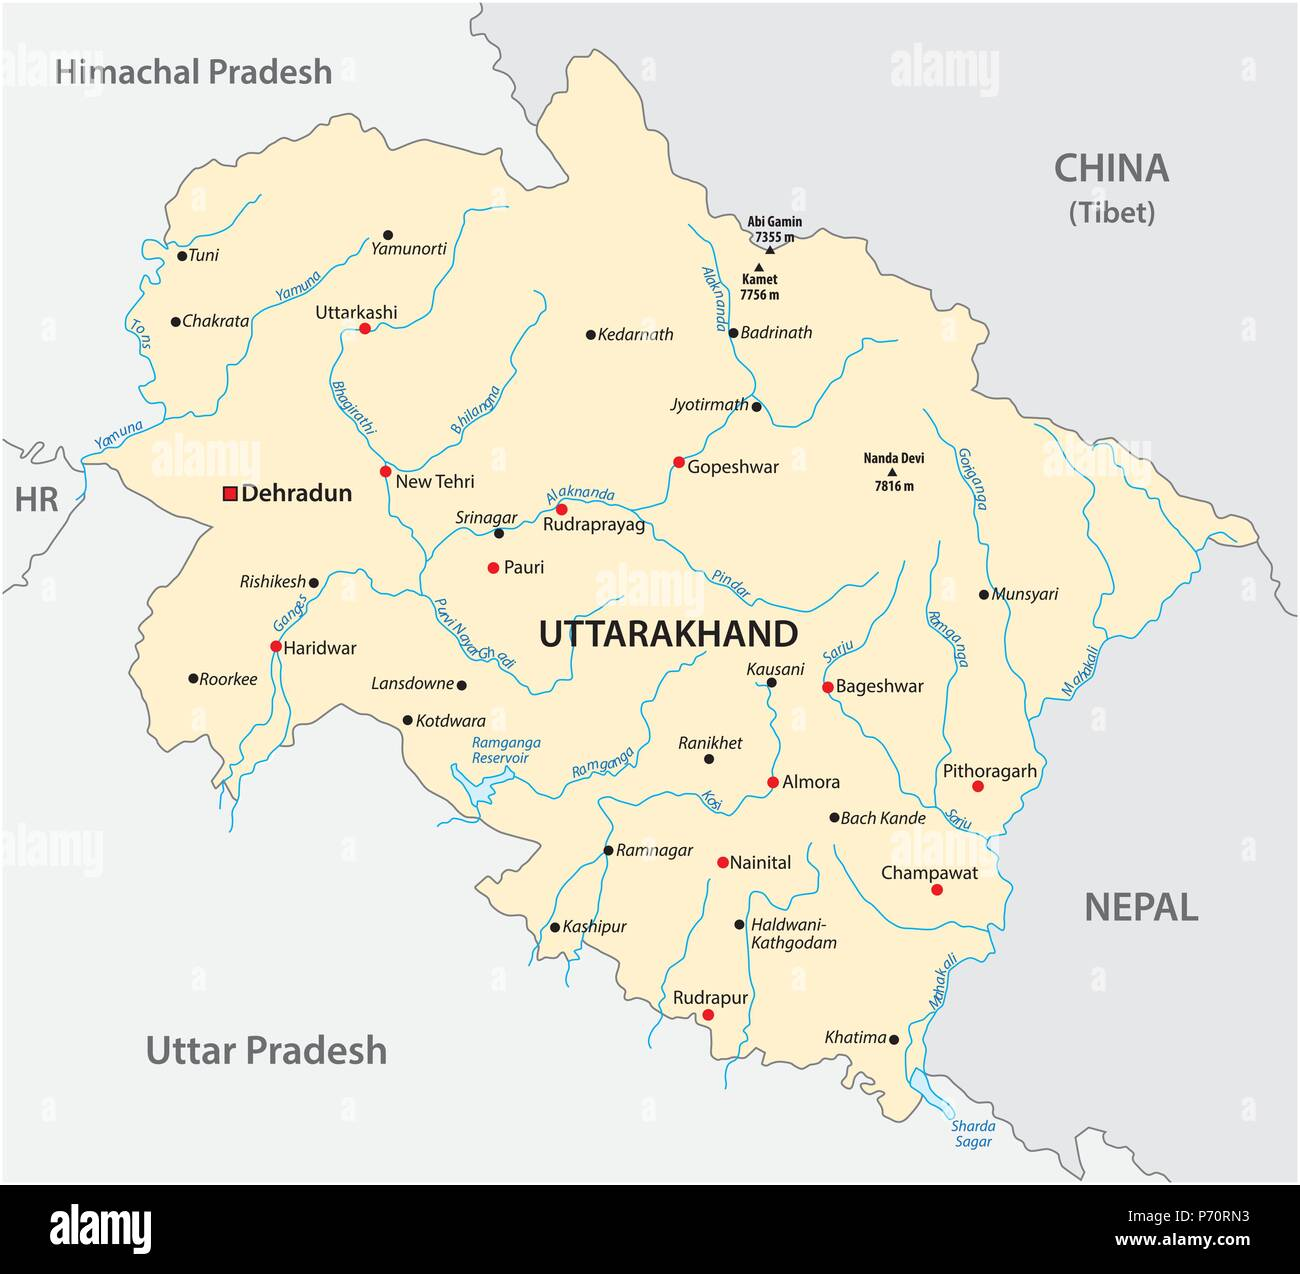 Vector map of the north Indian state of Uttarakhand, India - Stock Vector